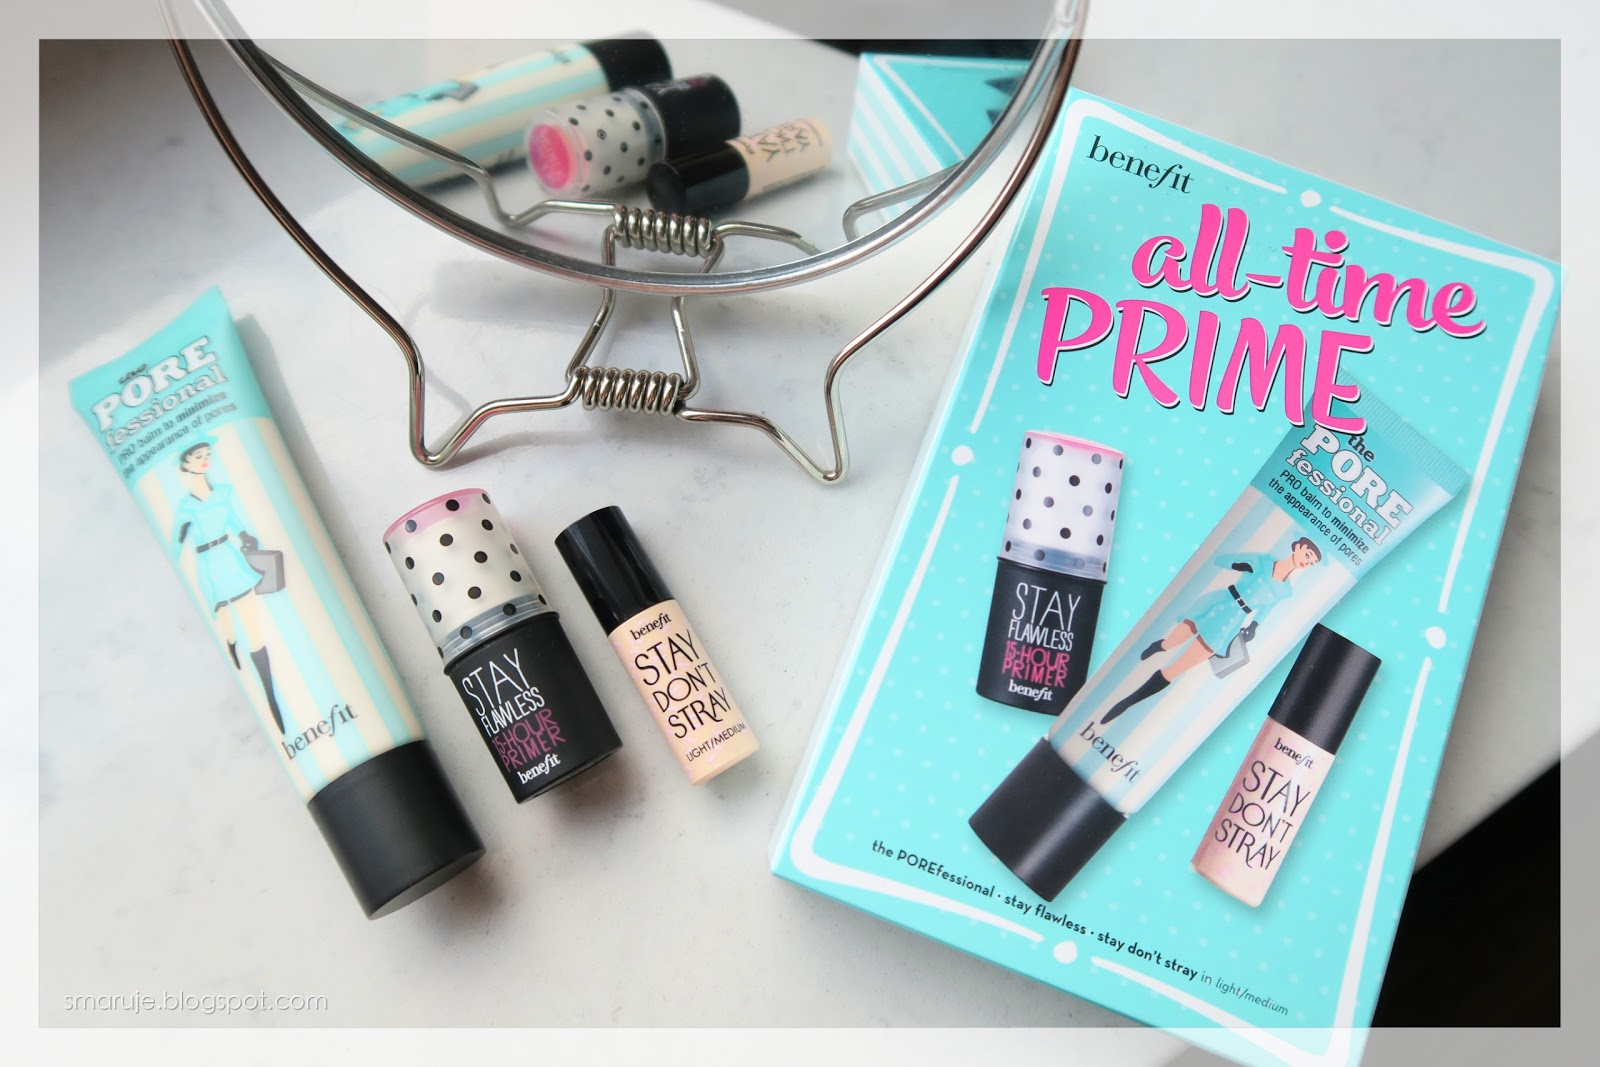 Bazy Benefit: Stay Don't Stray | Stay Flawless 15-Hour Primer | POREfessional